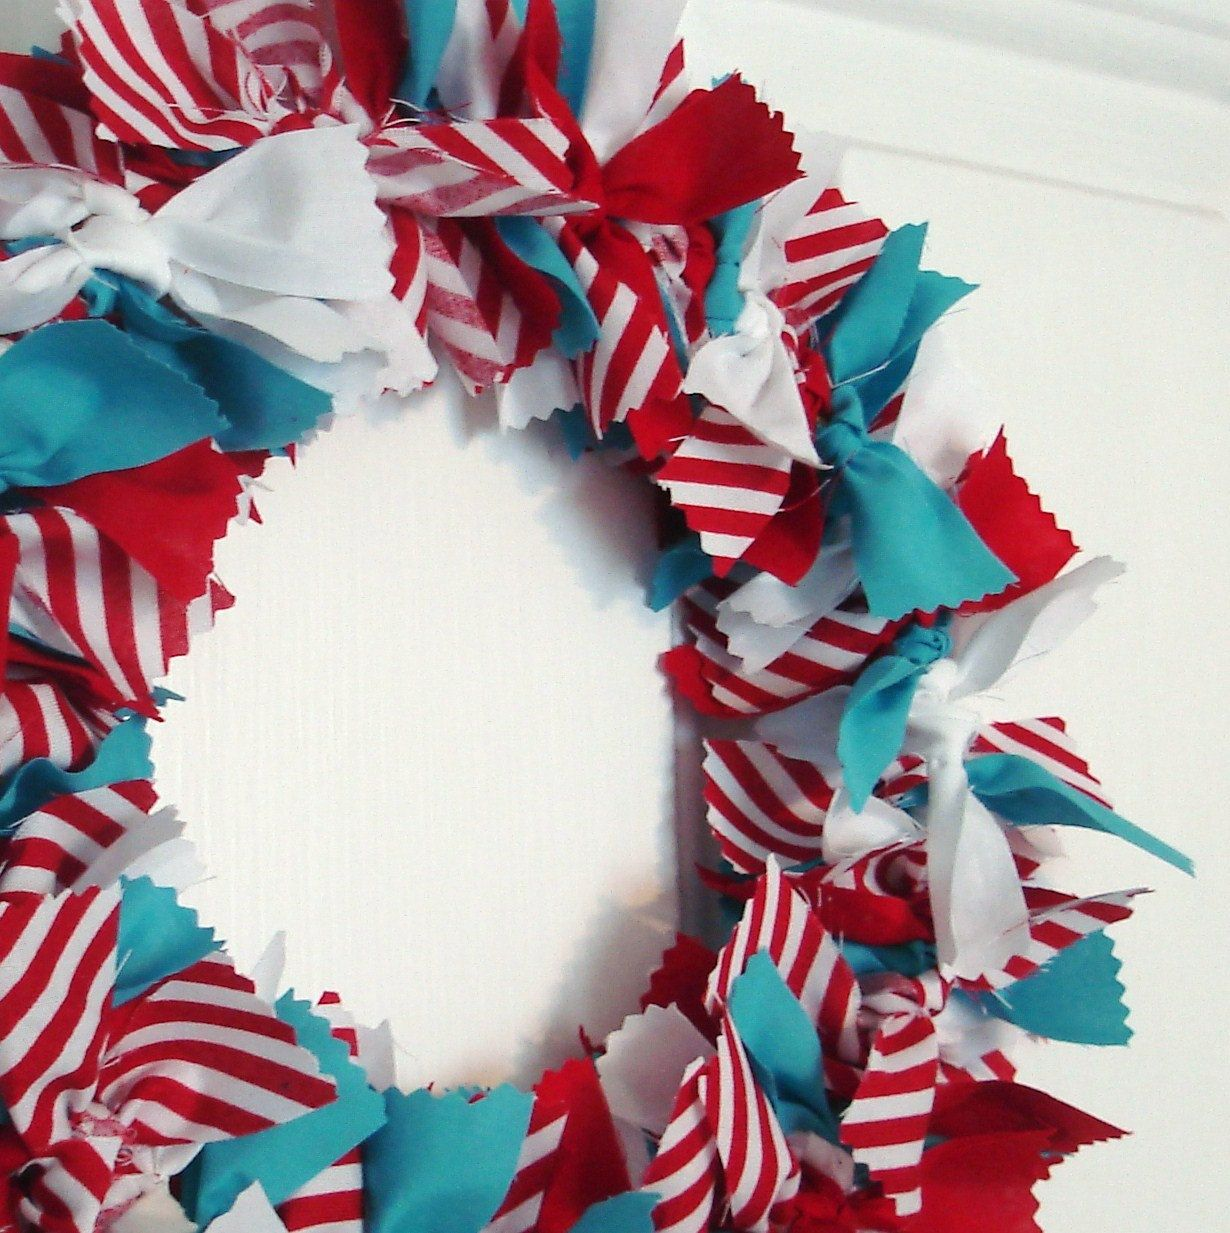 Red Turquoise Not Just For Holiday Decor: Red White And Turquoise Fabric Wreath By PolkaDotSkies On